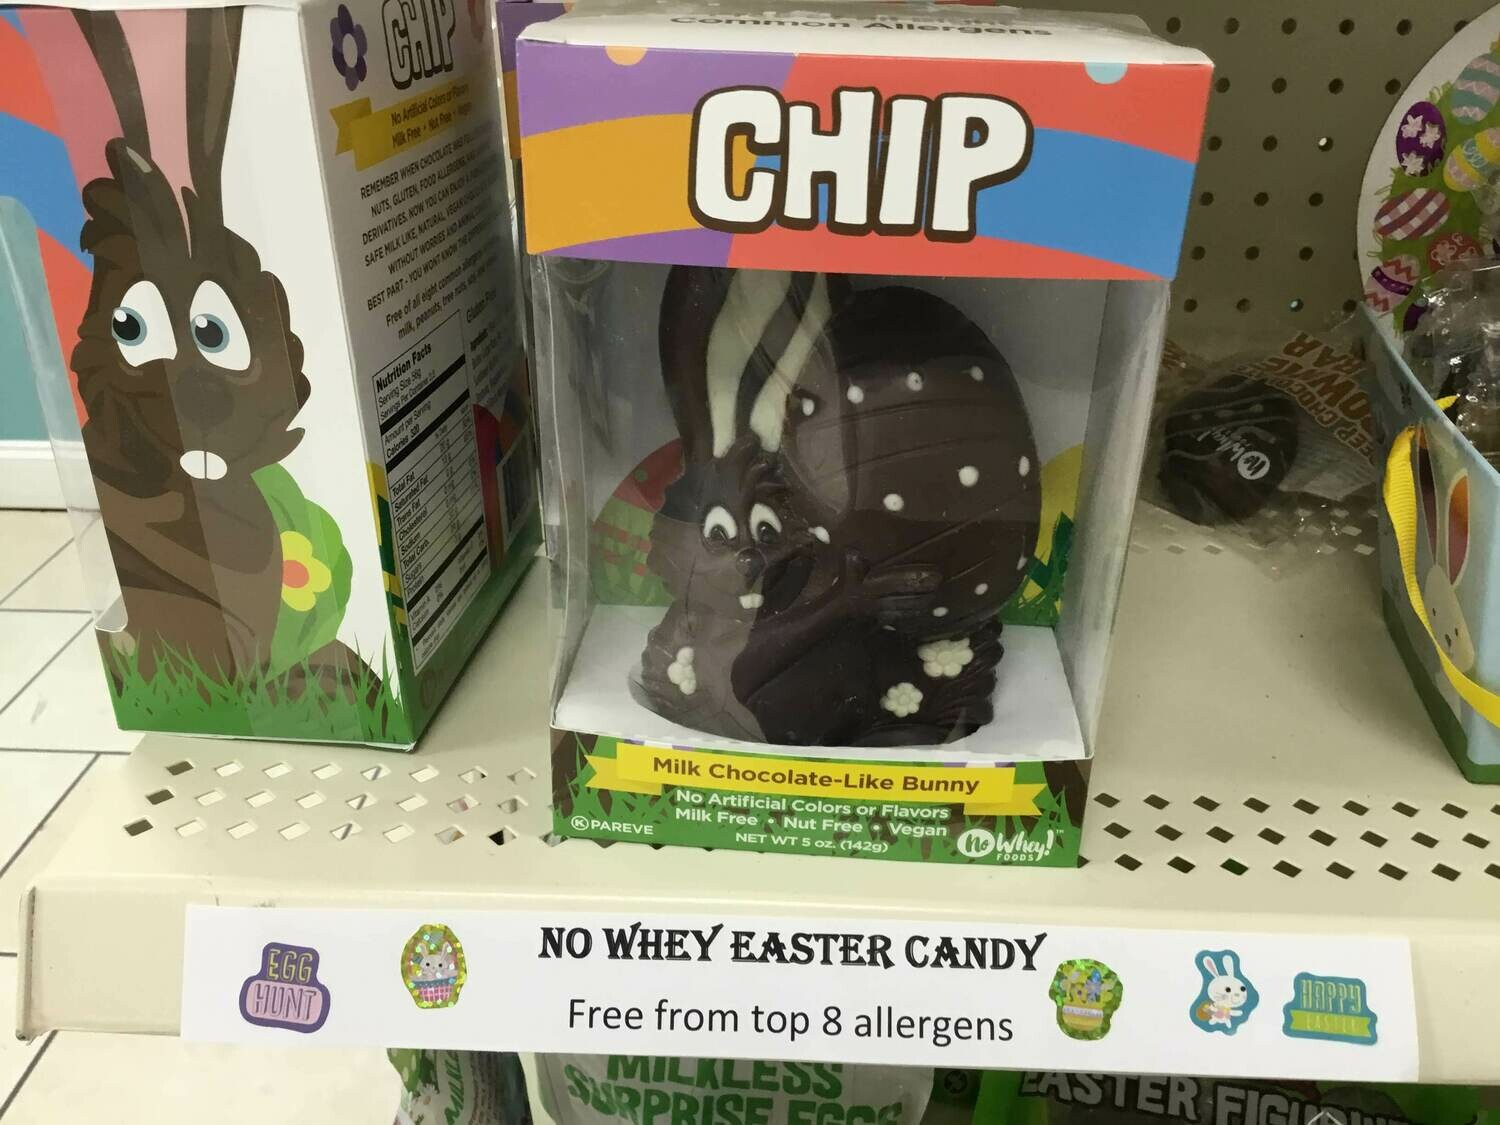 No Whey Easter Candy